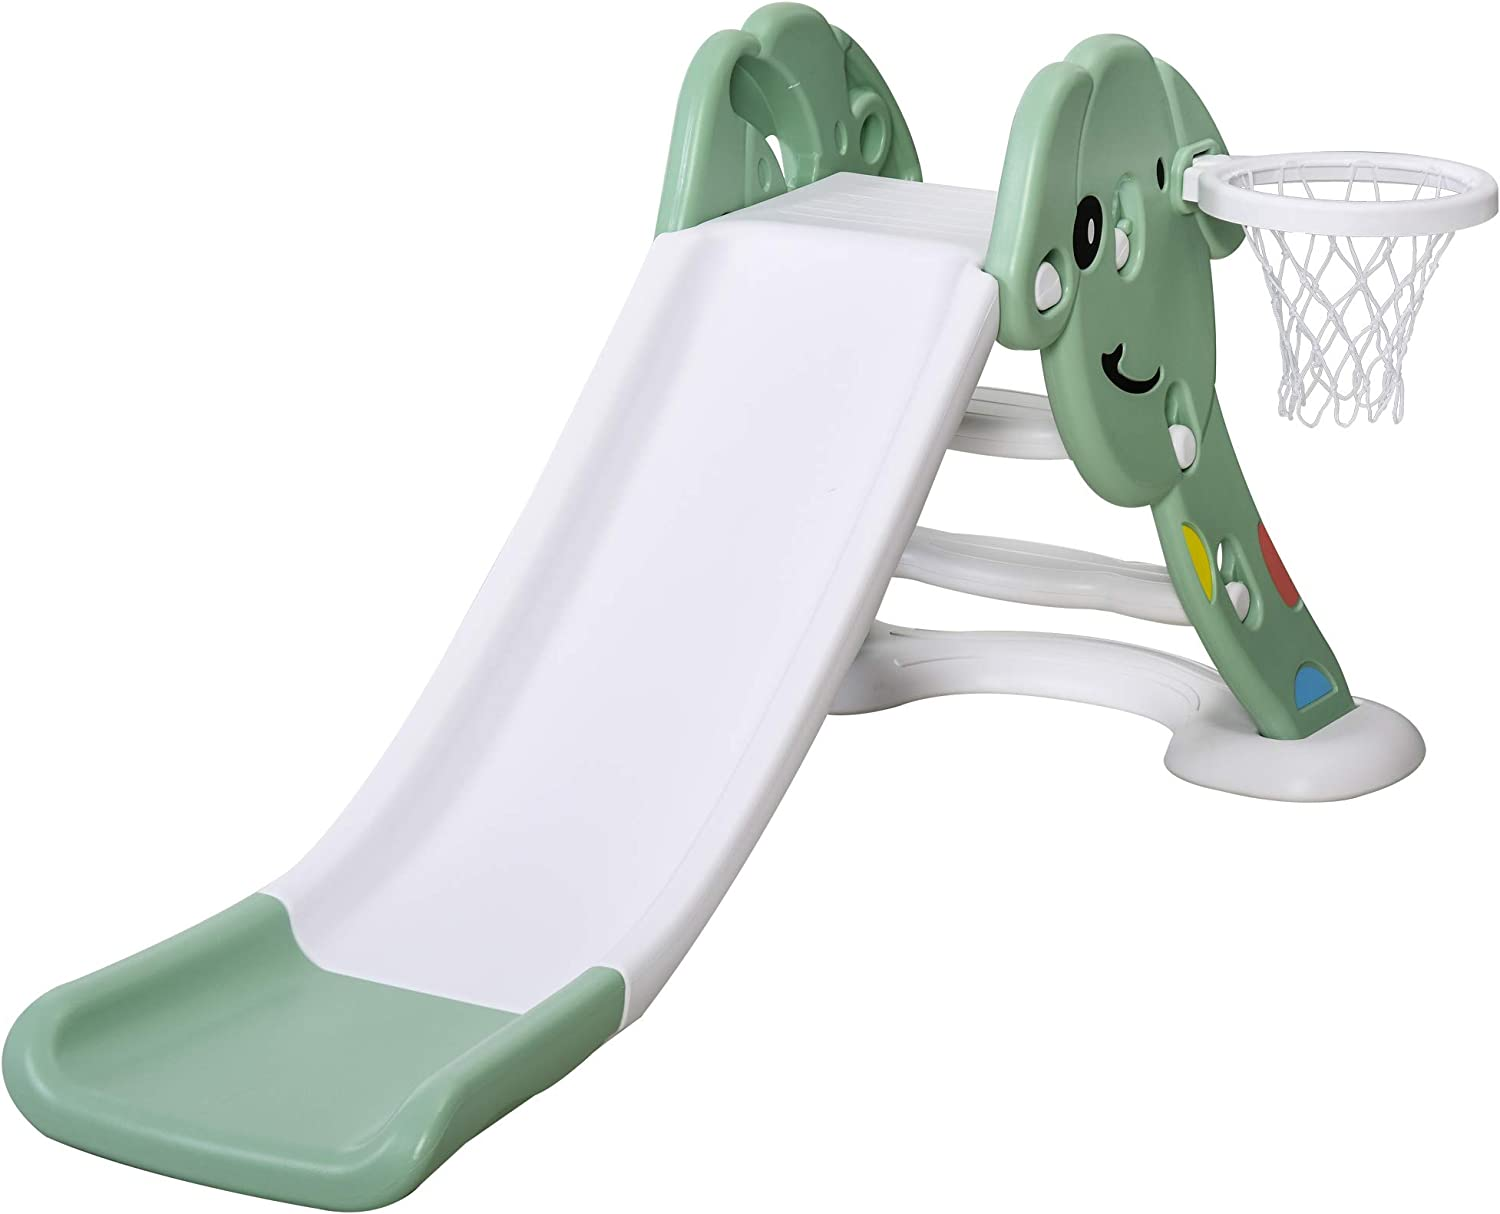 Qaba Indoor/Outdoor Kids Toy Slide with a Safety Triangle Design